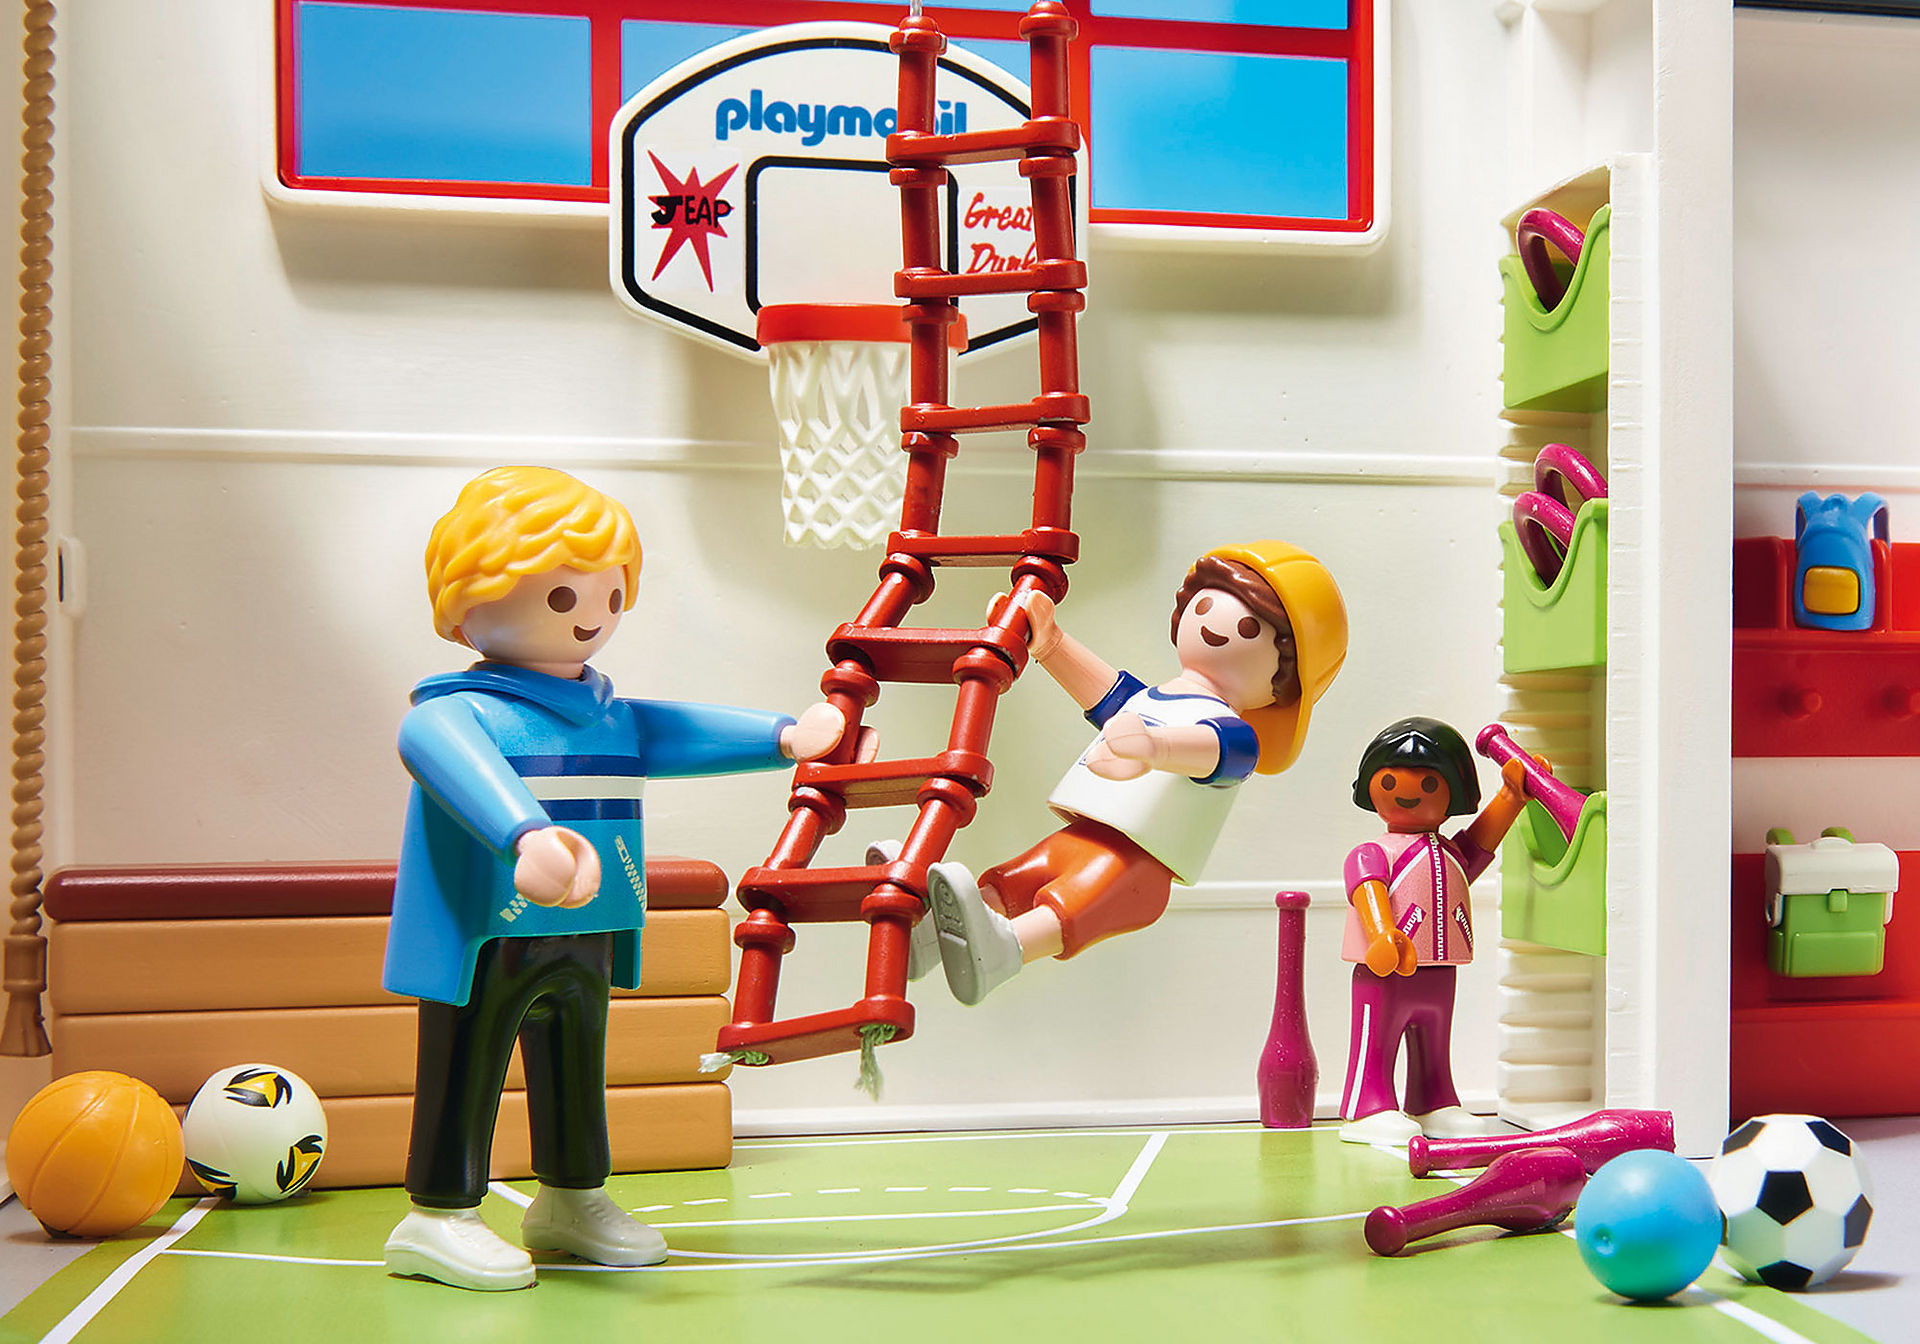 http://media.playmobil.com/i/playmobil/9454_product_extra2/Sportlokaal